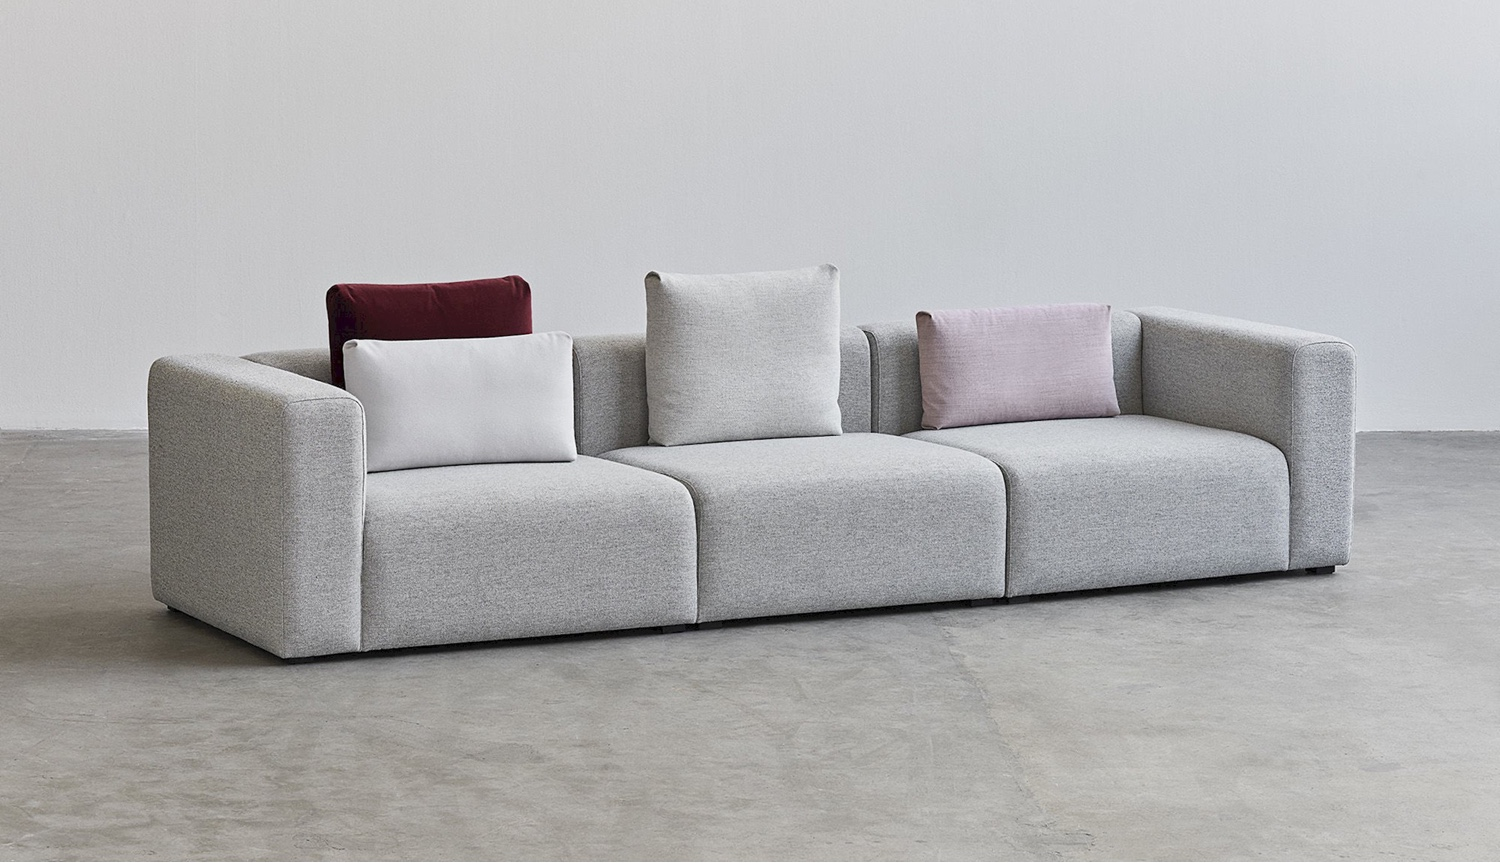 hay mags sofa fabrics power recliner sofas leather seven pertinent examples of minimalism in design